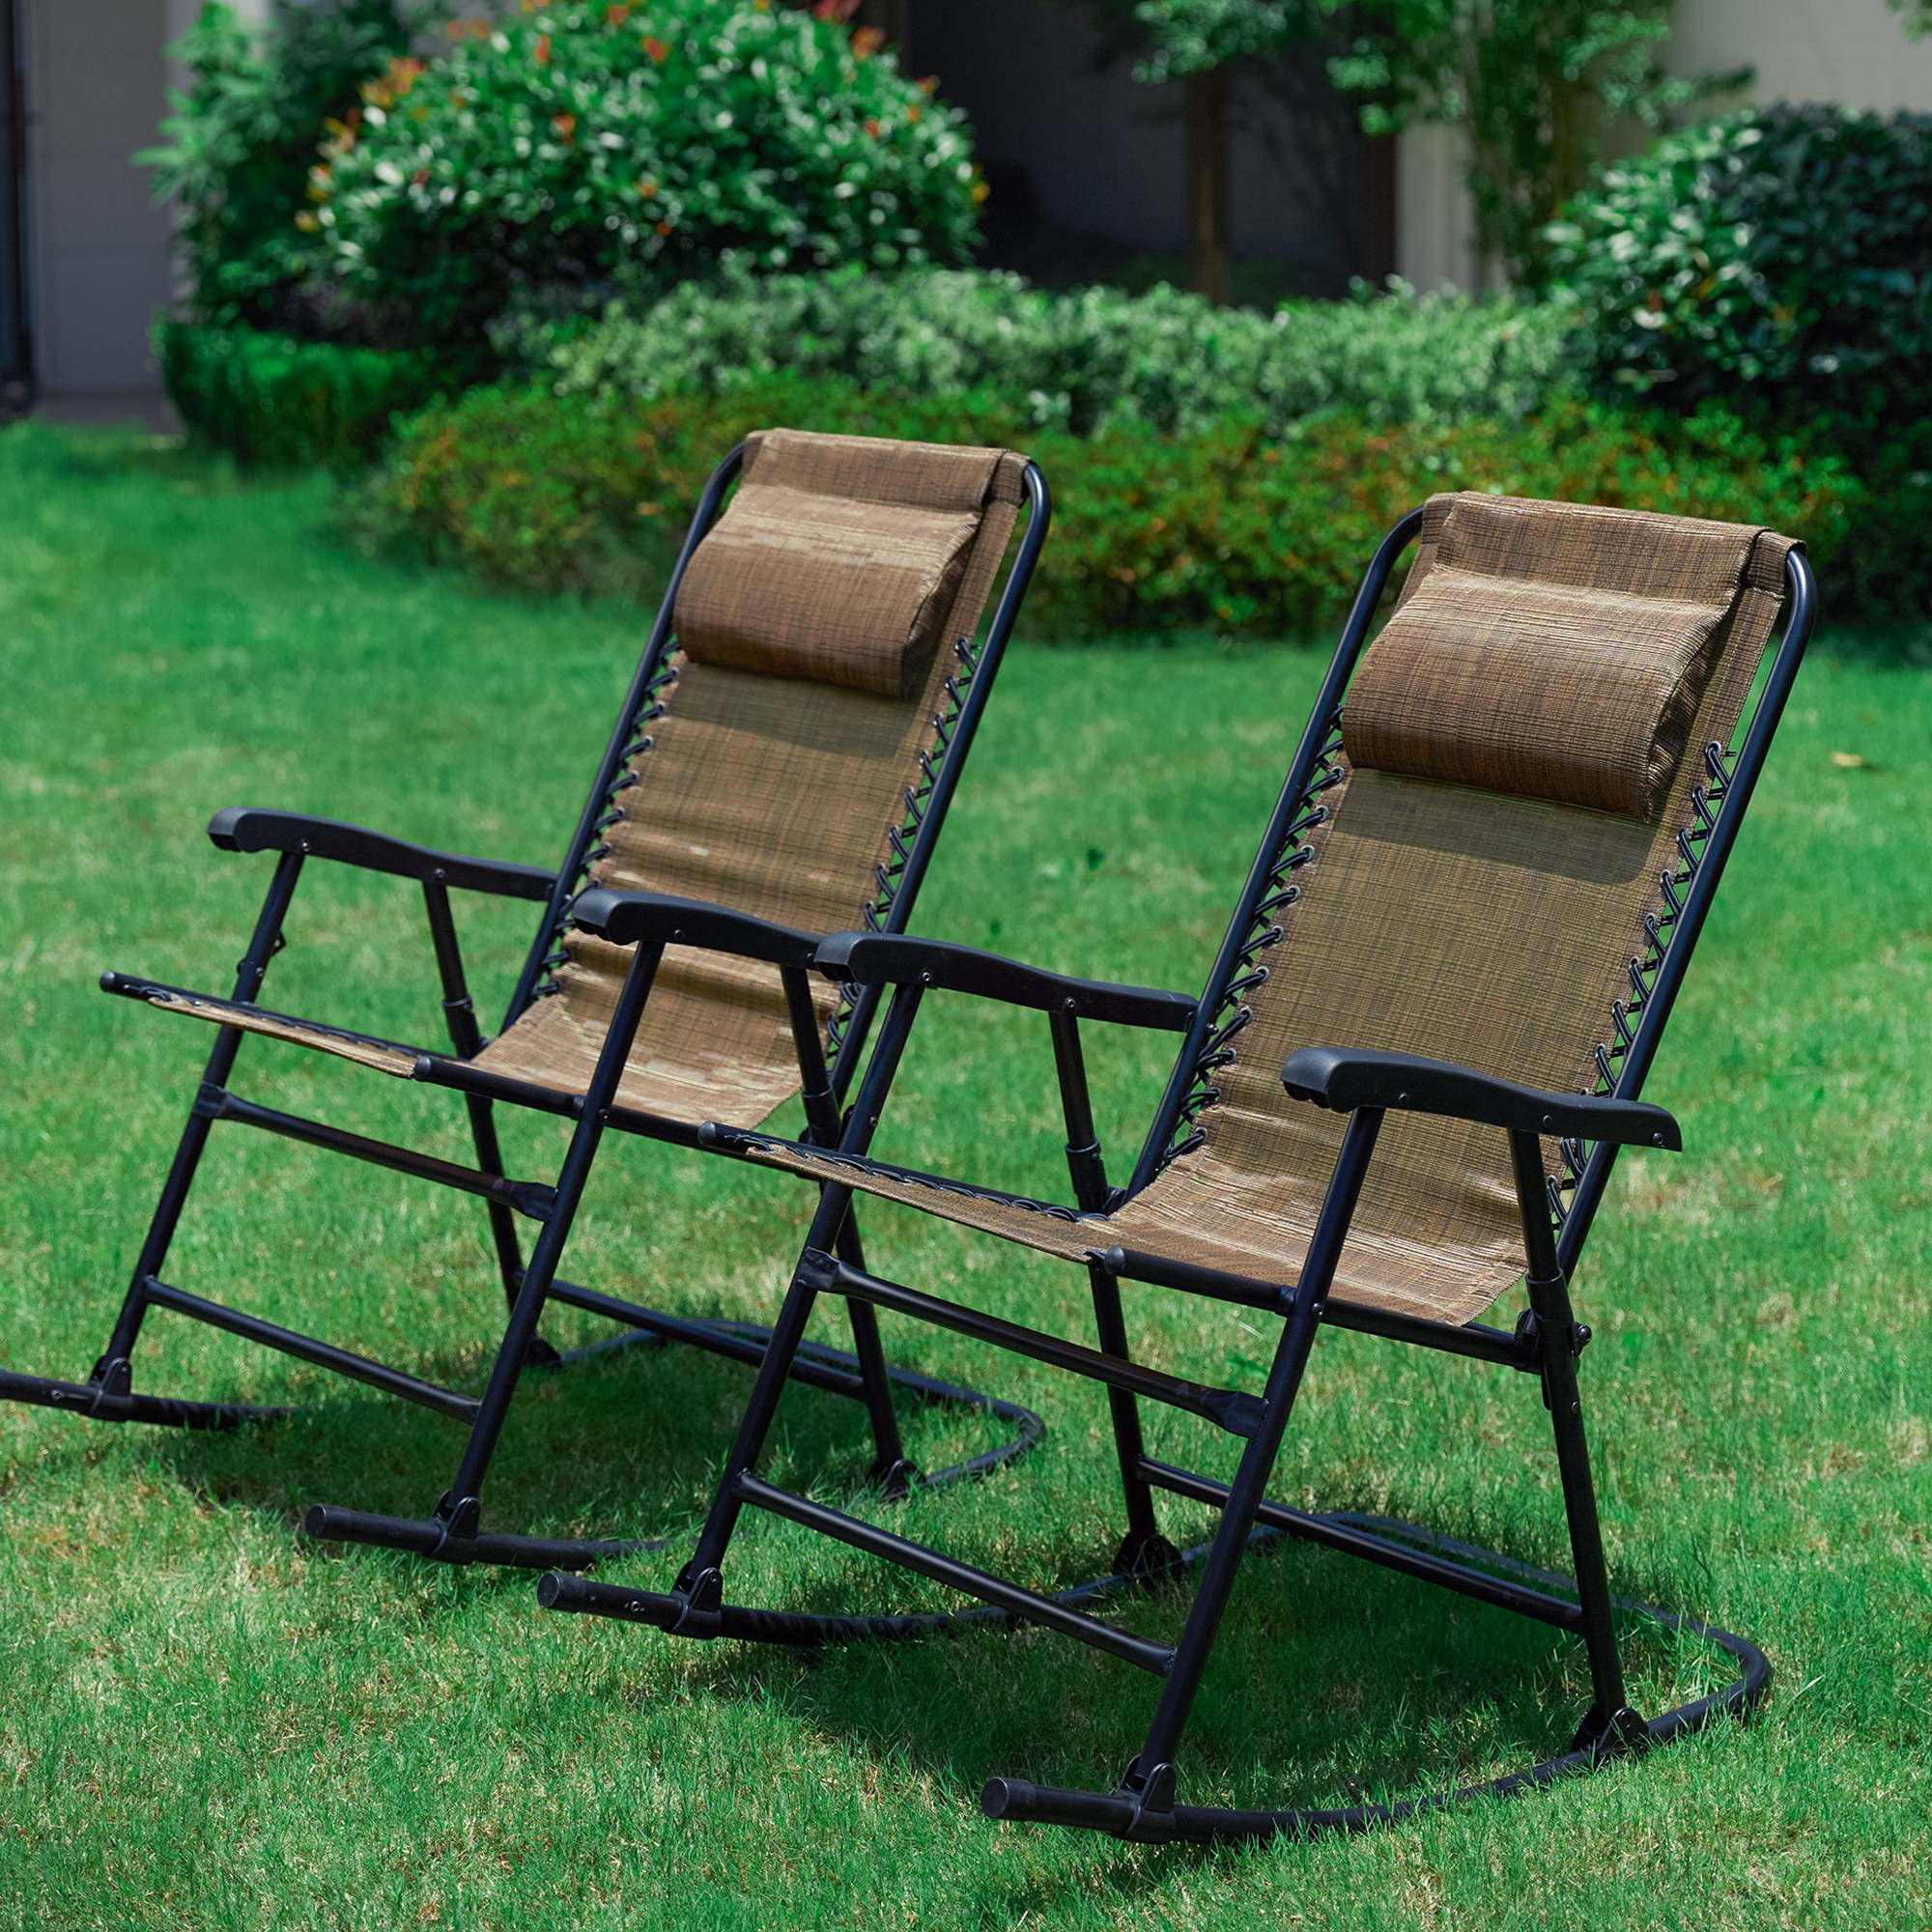 2-Piece Portable Folding Rocking Chair Set - Brown